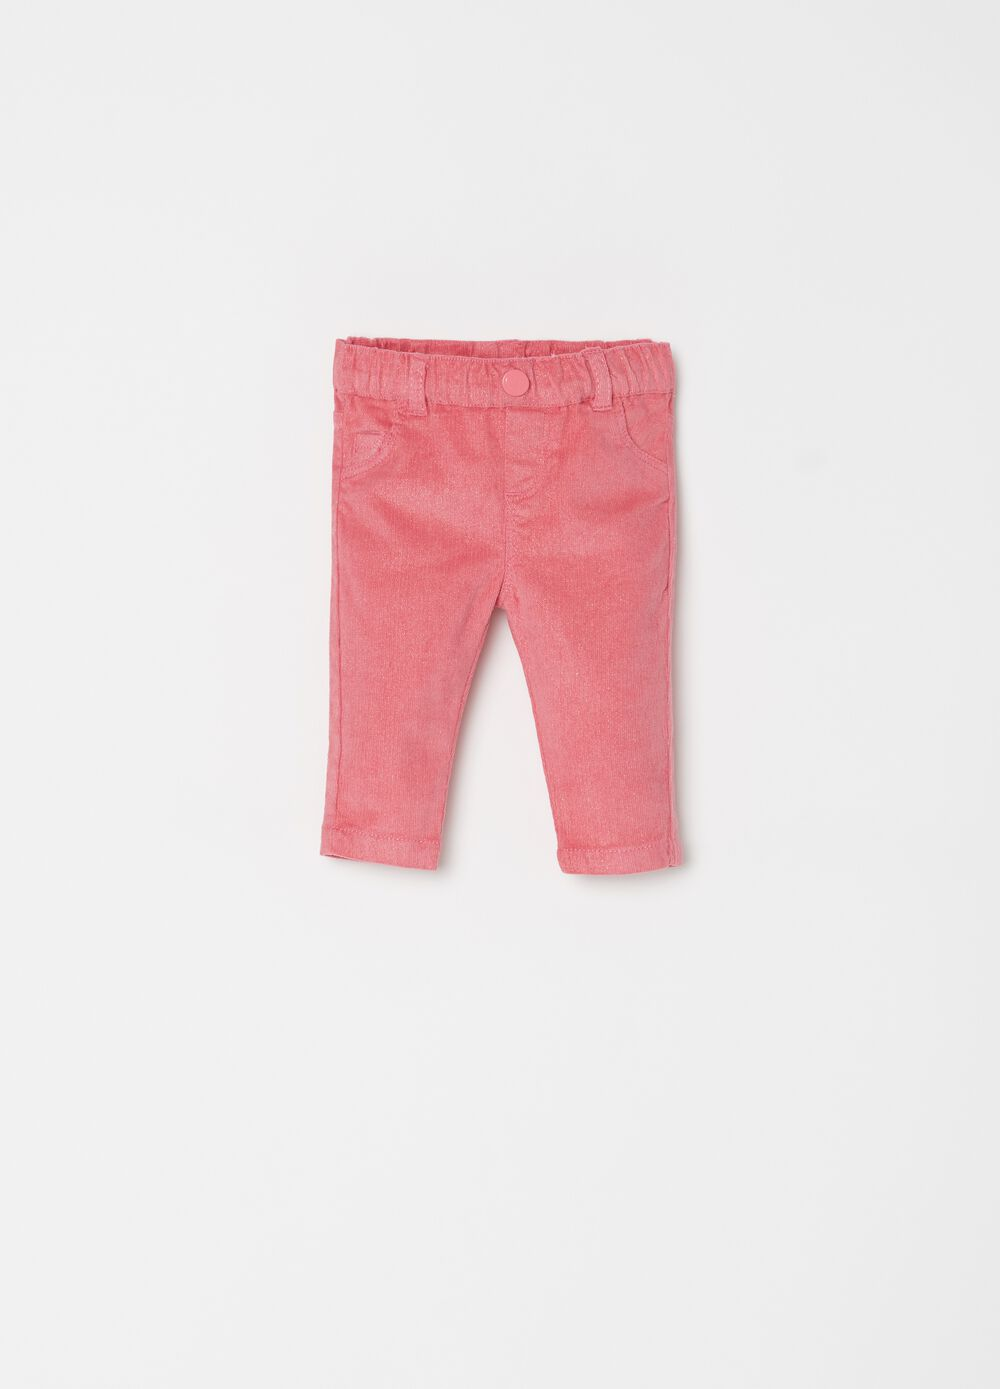 Pantaloni in cotone stretch con glitter